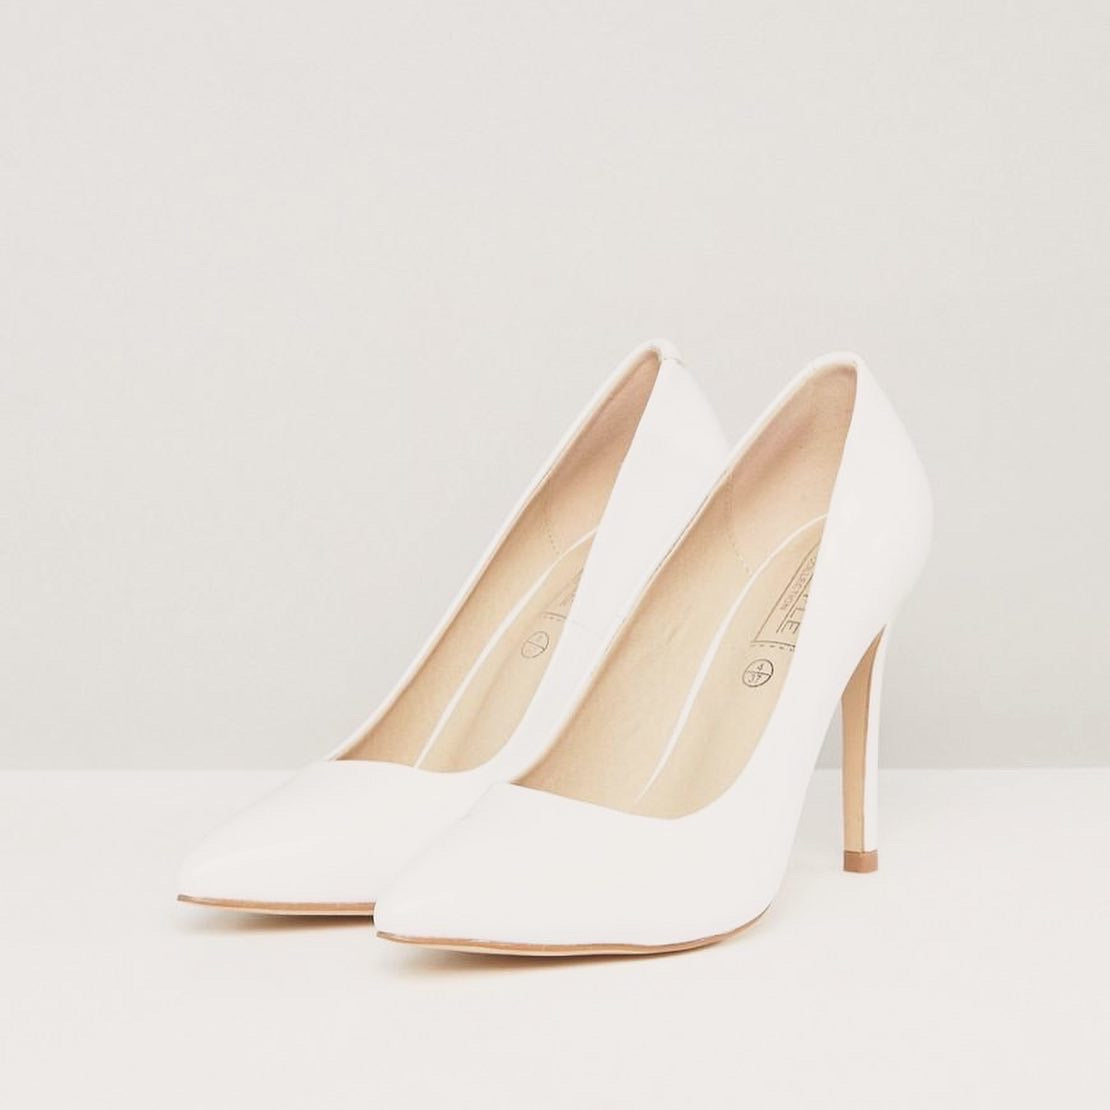 White Pumps Heels Size 7